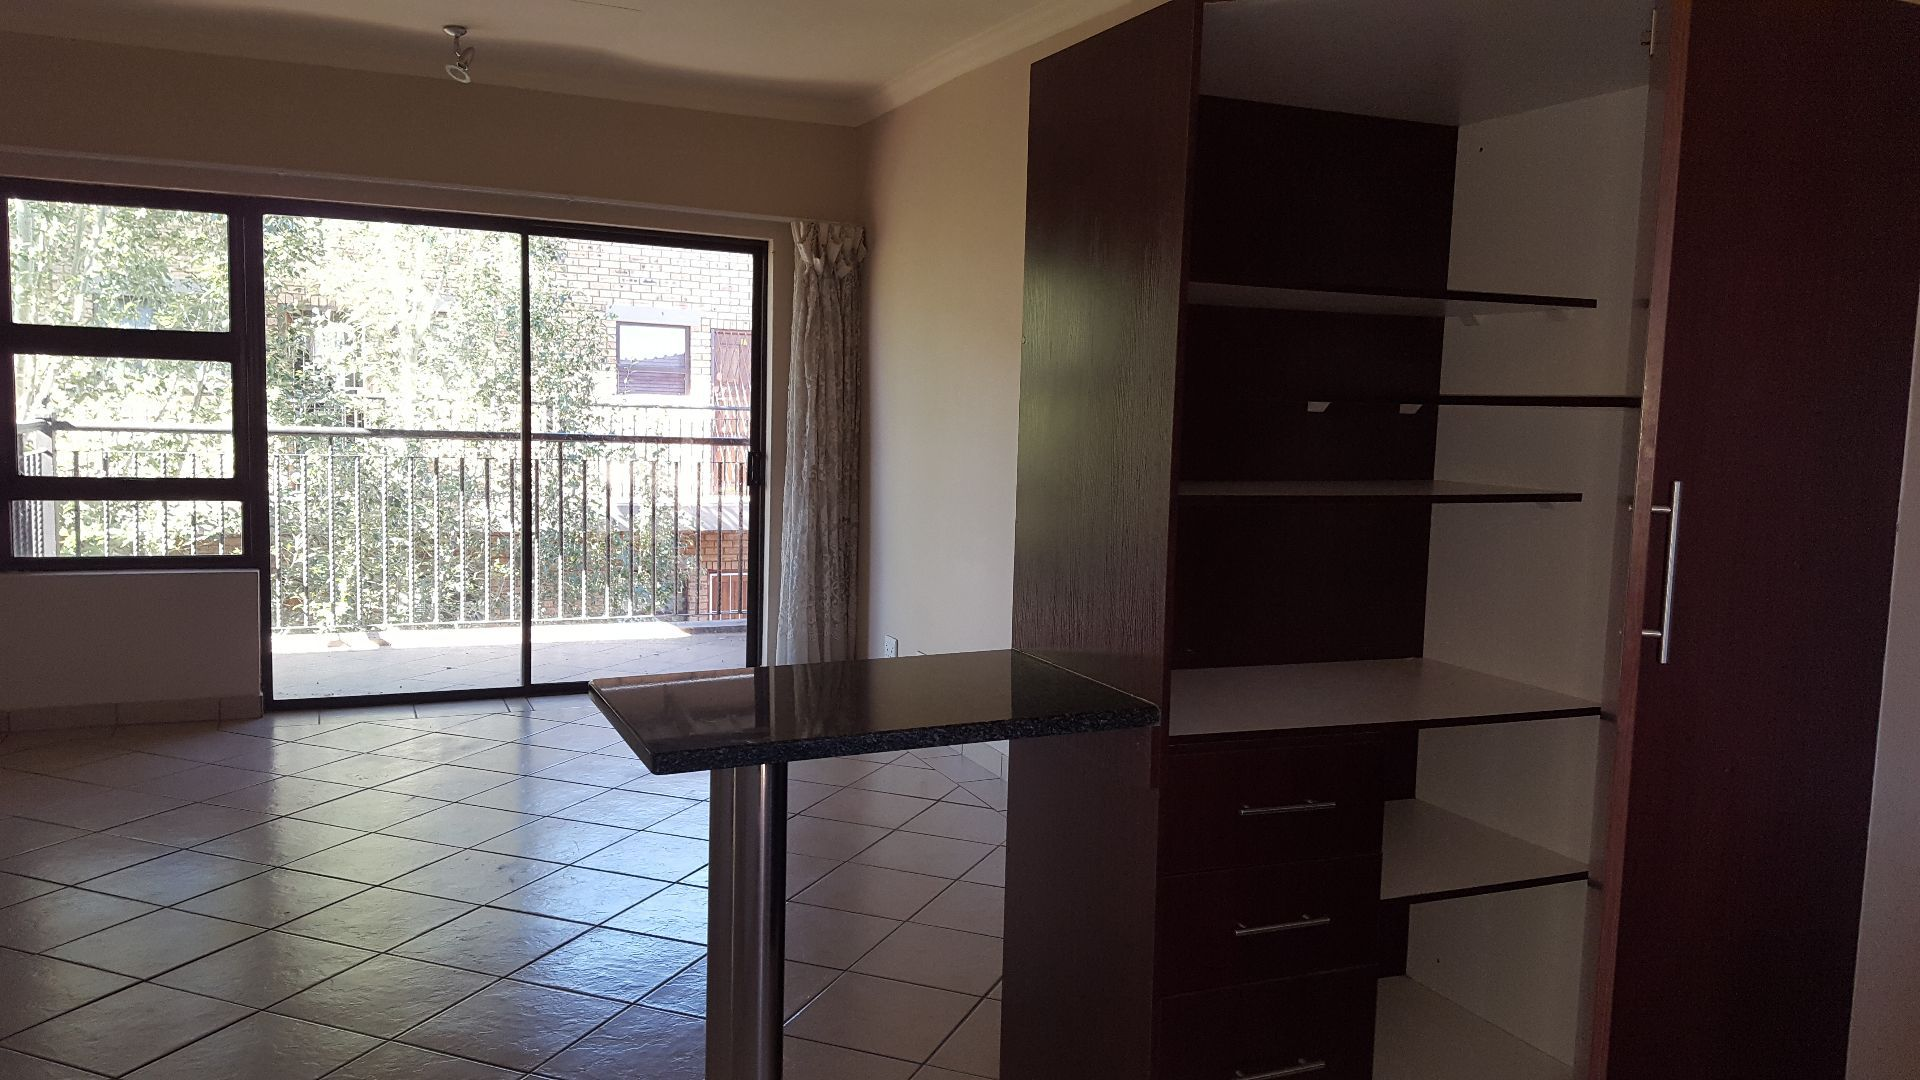 Potchefstroom Central property for sale. Ref No: 13514573. Picture no 10